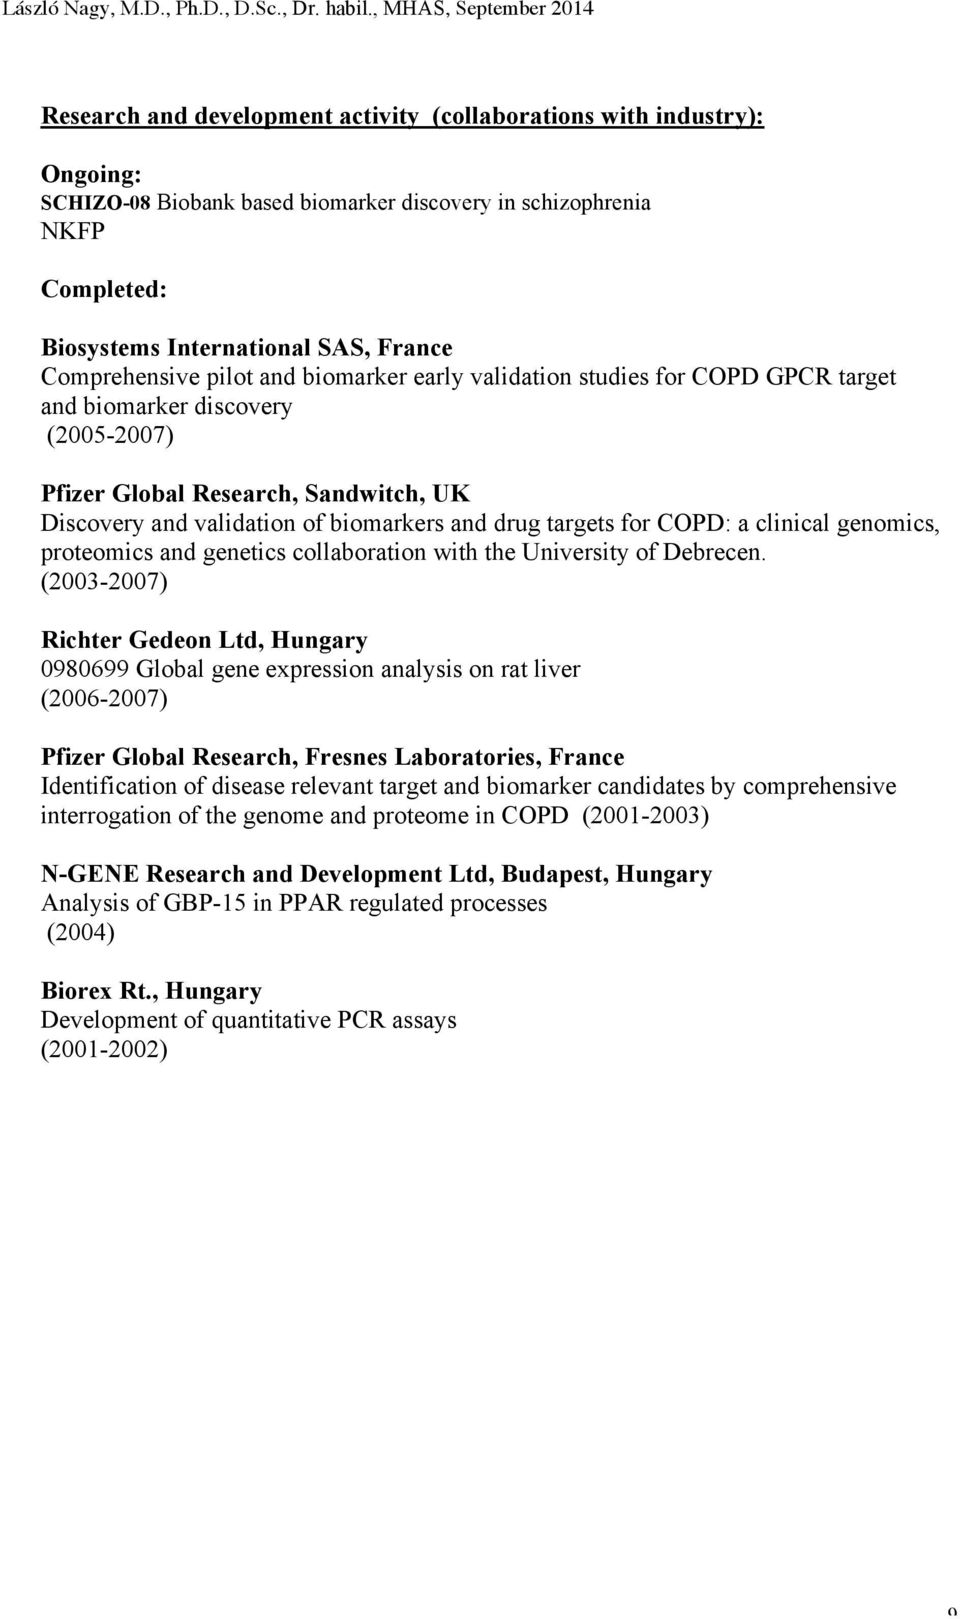 SAS, France Comprehensive pilot and biomarker early validation studies for COPD GPCR target and biomarker discovery (2005-2007) Pfizer Global Research, Sandwitch, UK Discovery and validation of